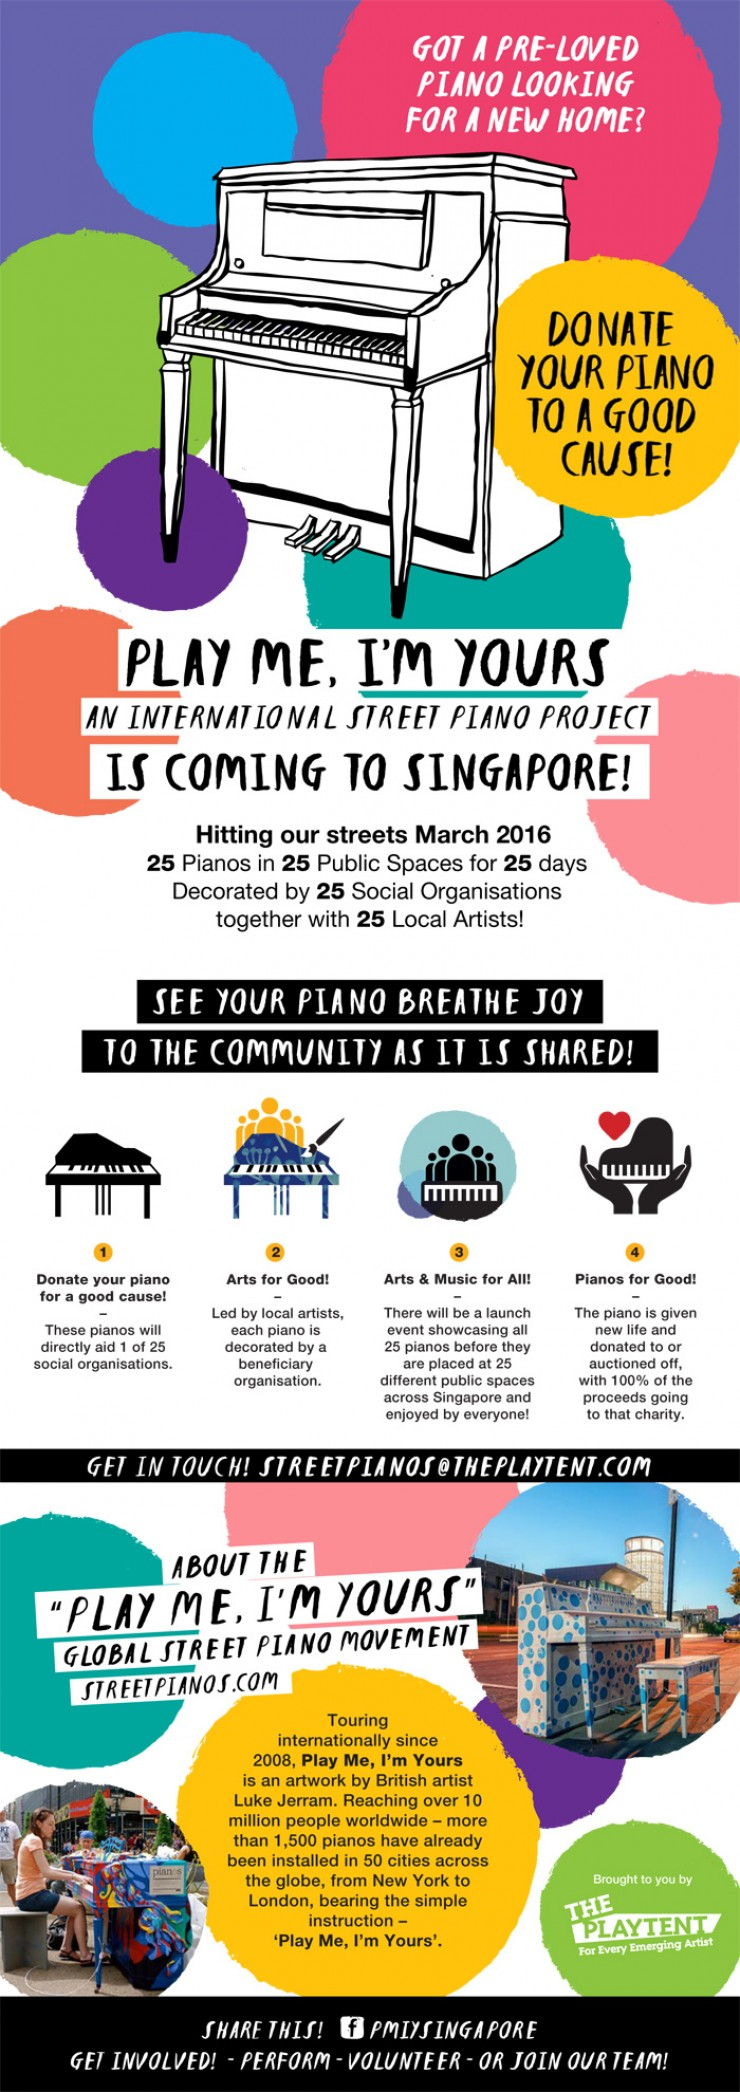 International Street Piano Project: Play Me, I'm Yours, in Singapore, March 2016